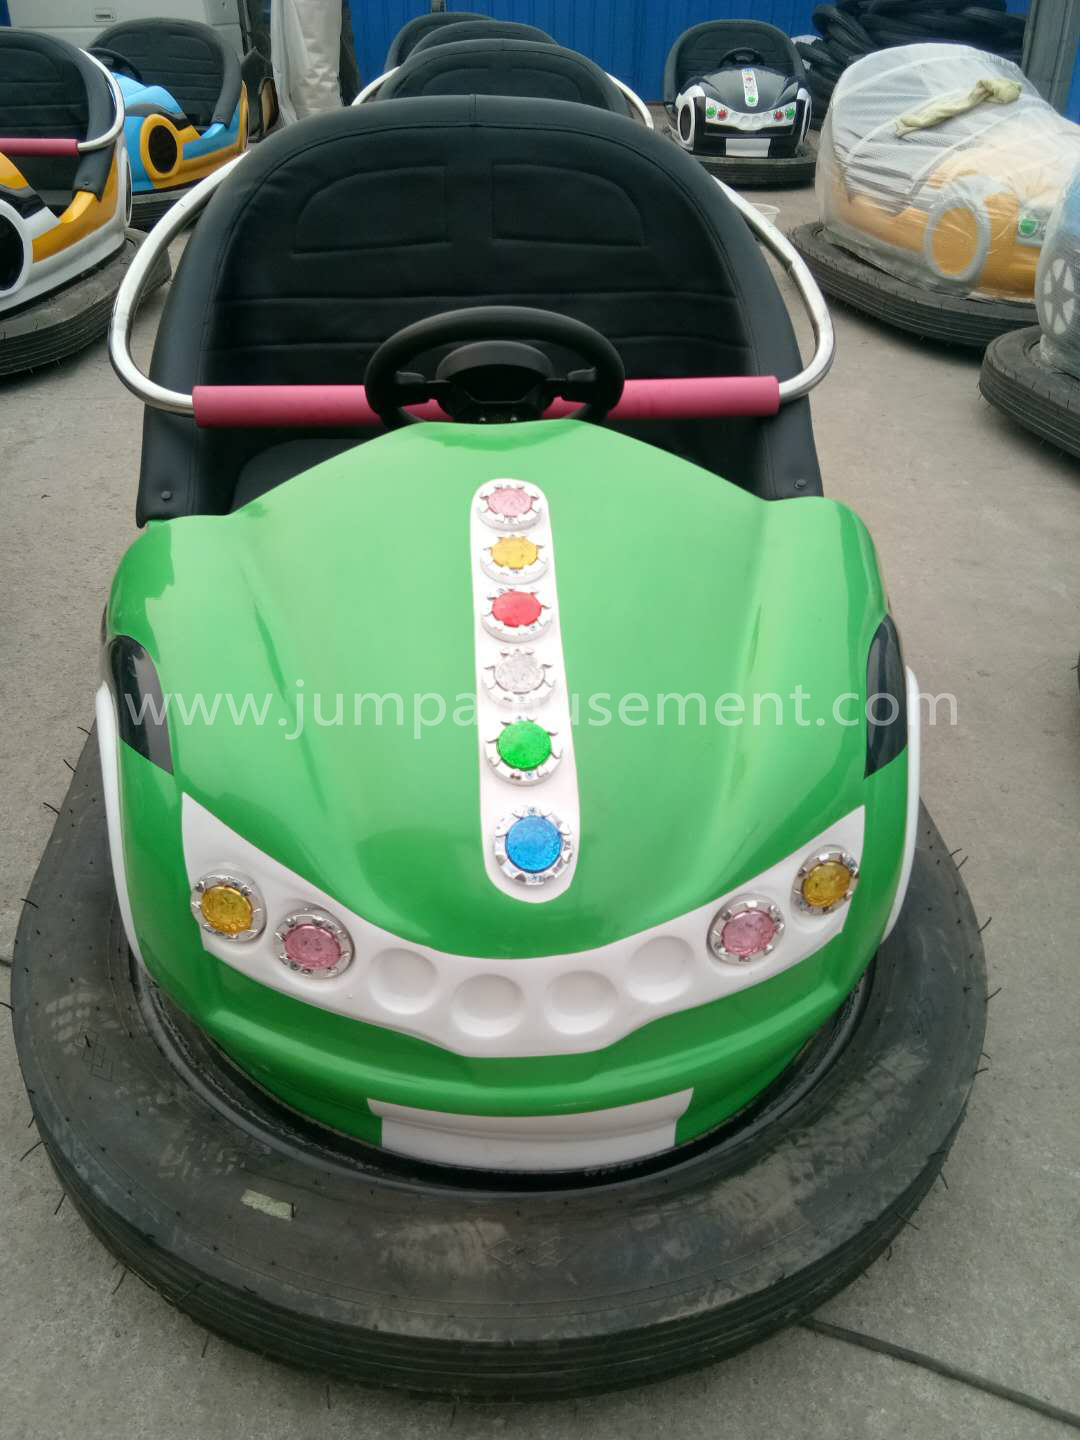 Wholesale Price China Adults Bumper Car - JP-BC10 – Jump Amusment Featured Image